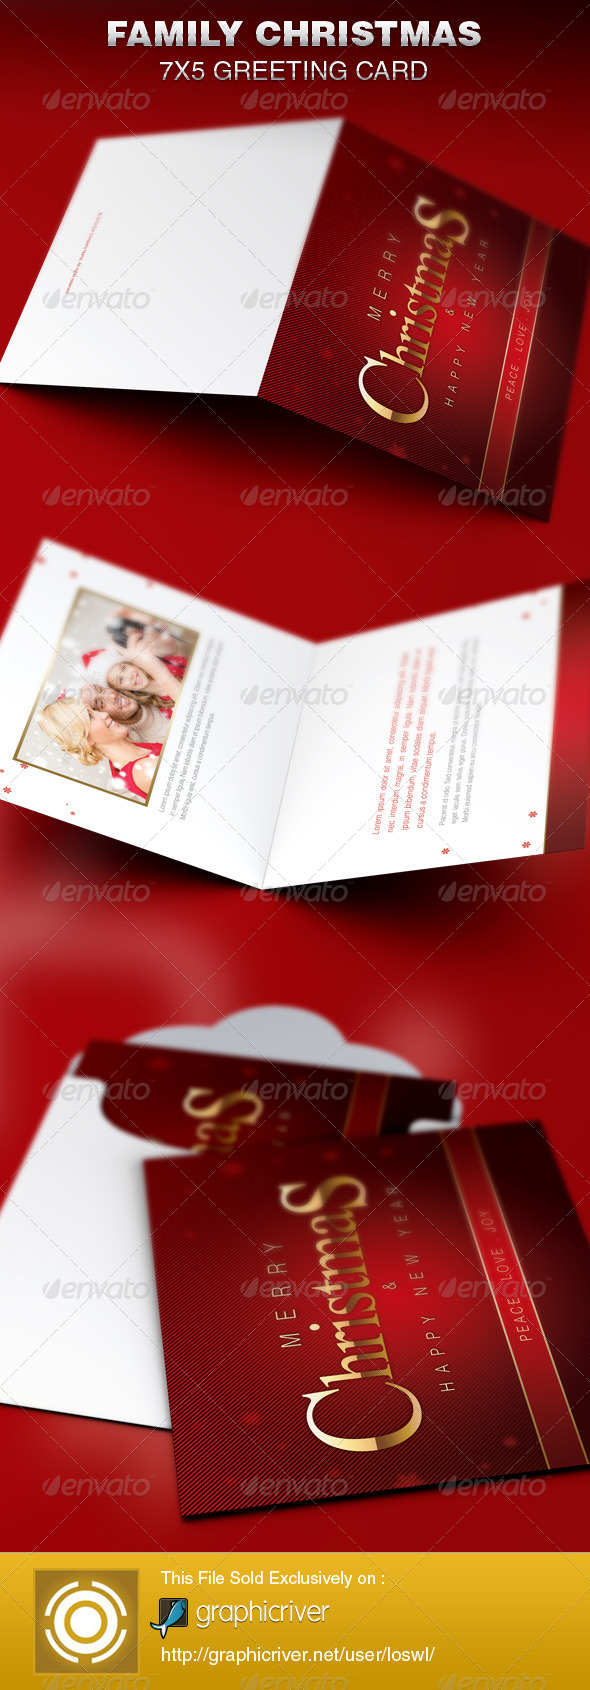 Family Christmas Greeting Card Template - Greeting Cards Cards & Invites